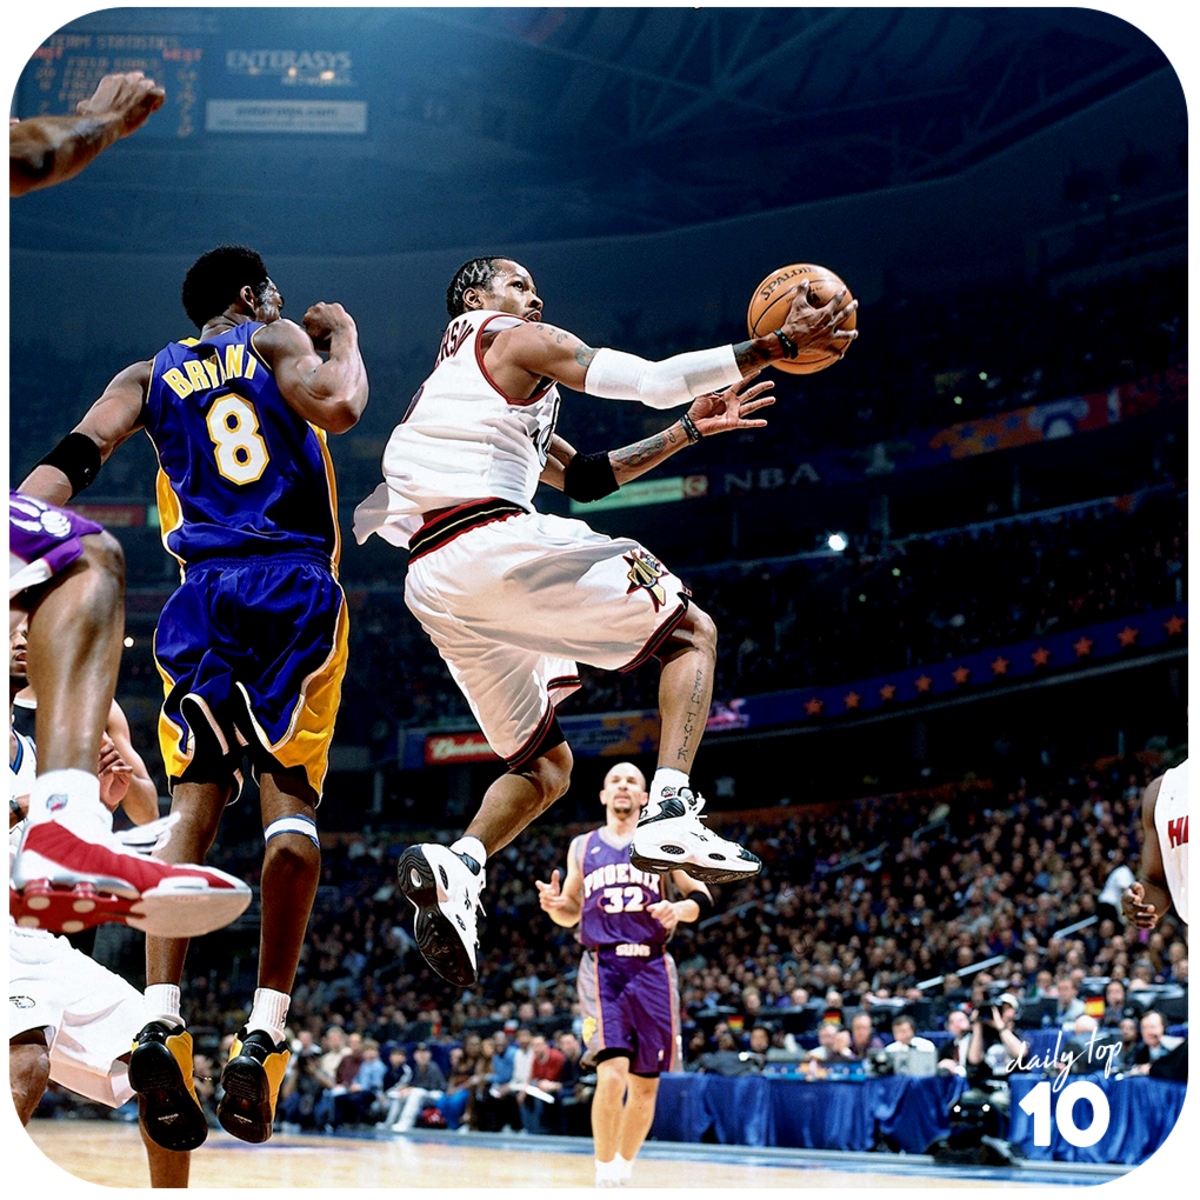 Allen Iverson hang time.